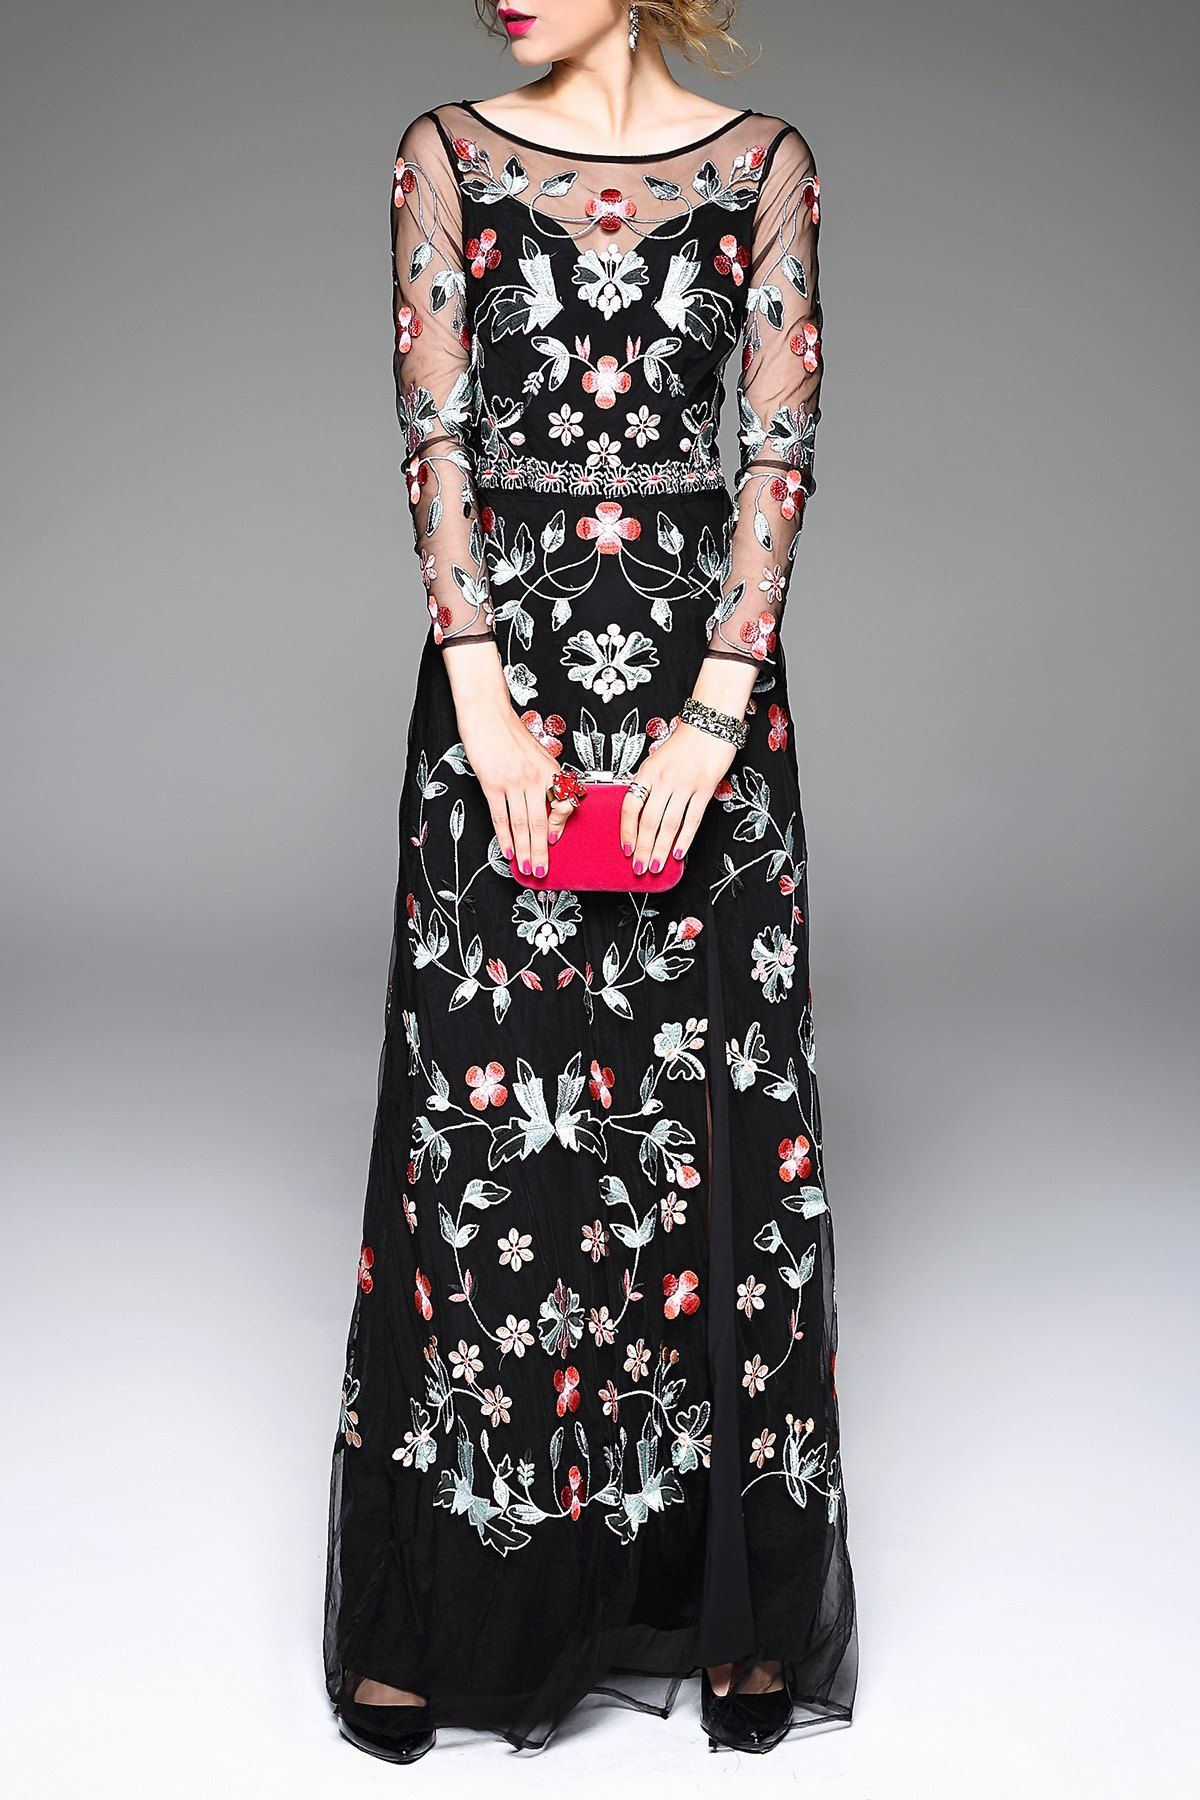 Floral embroidered slit prom dress black xl prom in